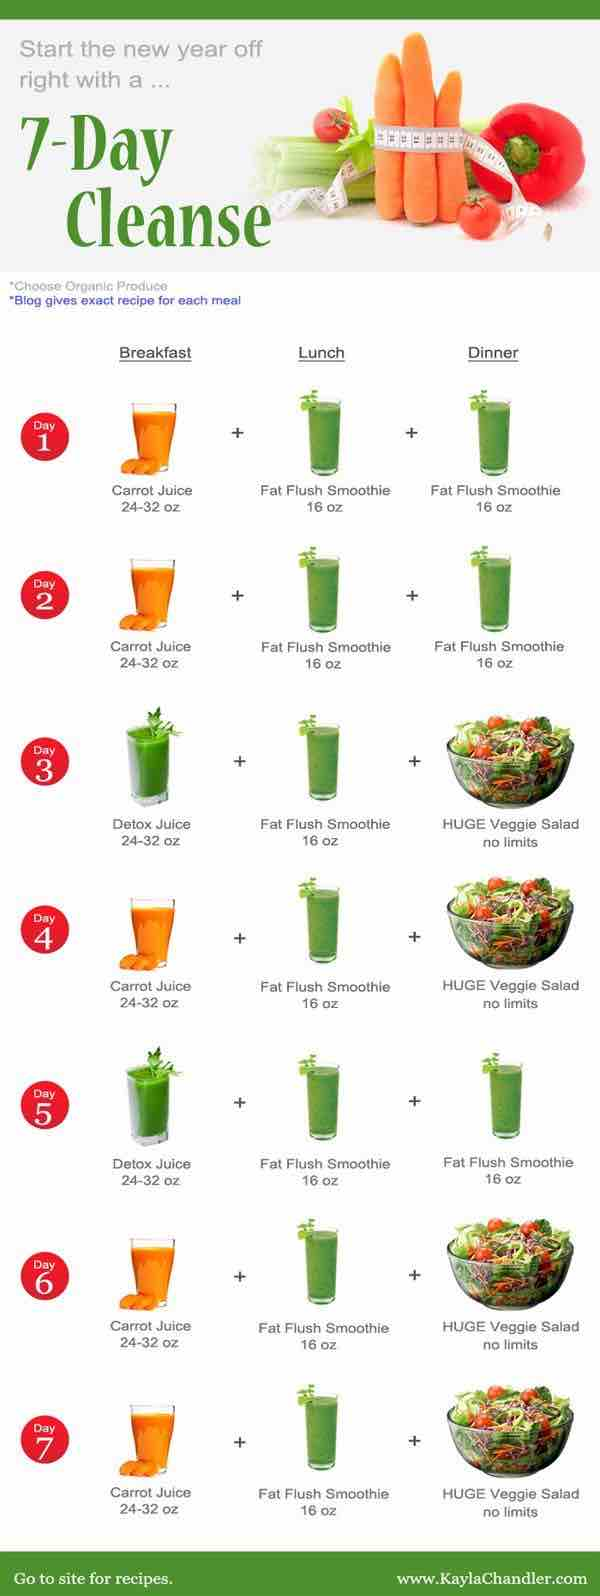 Juicing Recipes 2 05052015nz